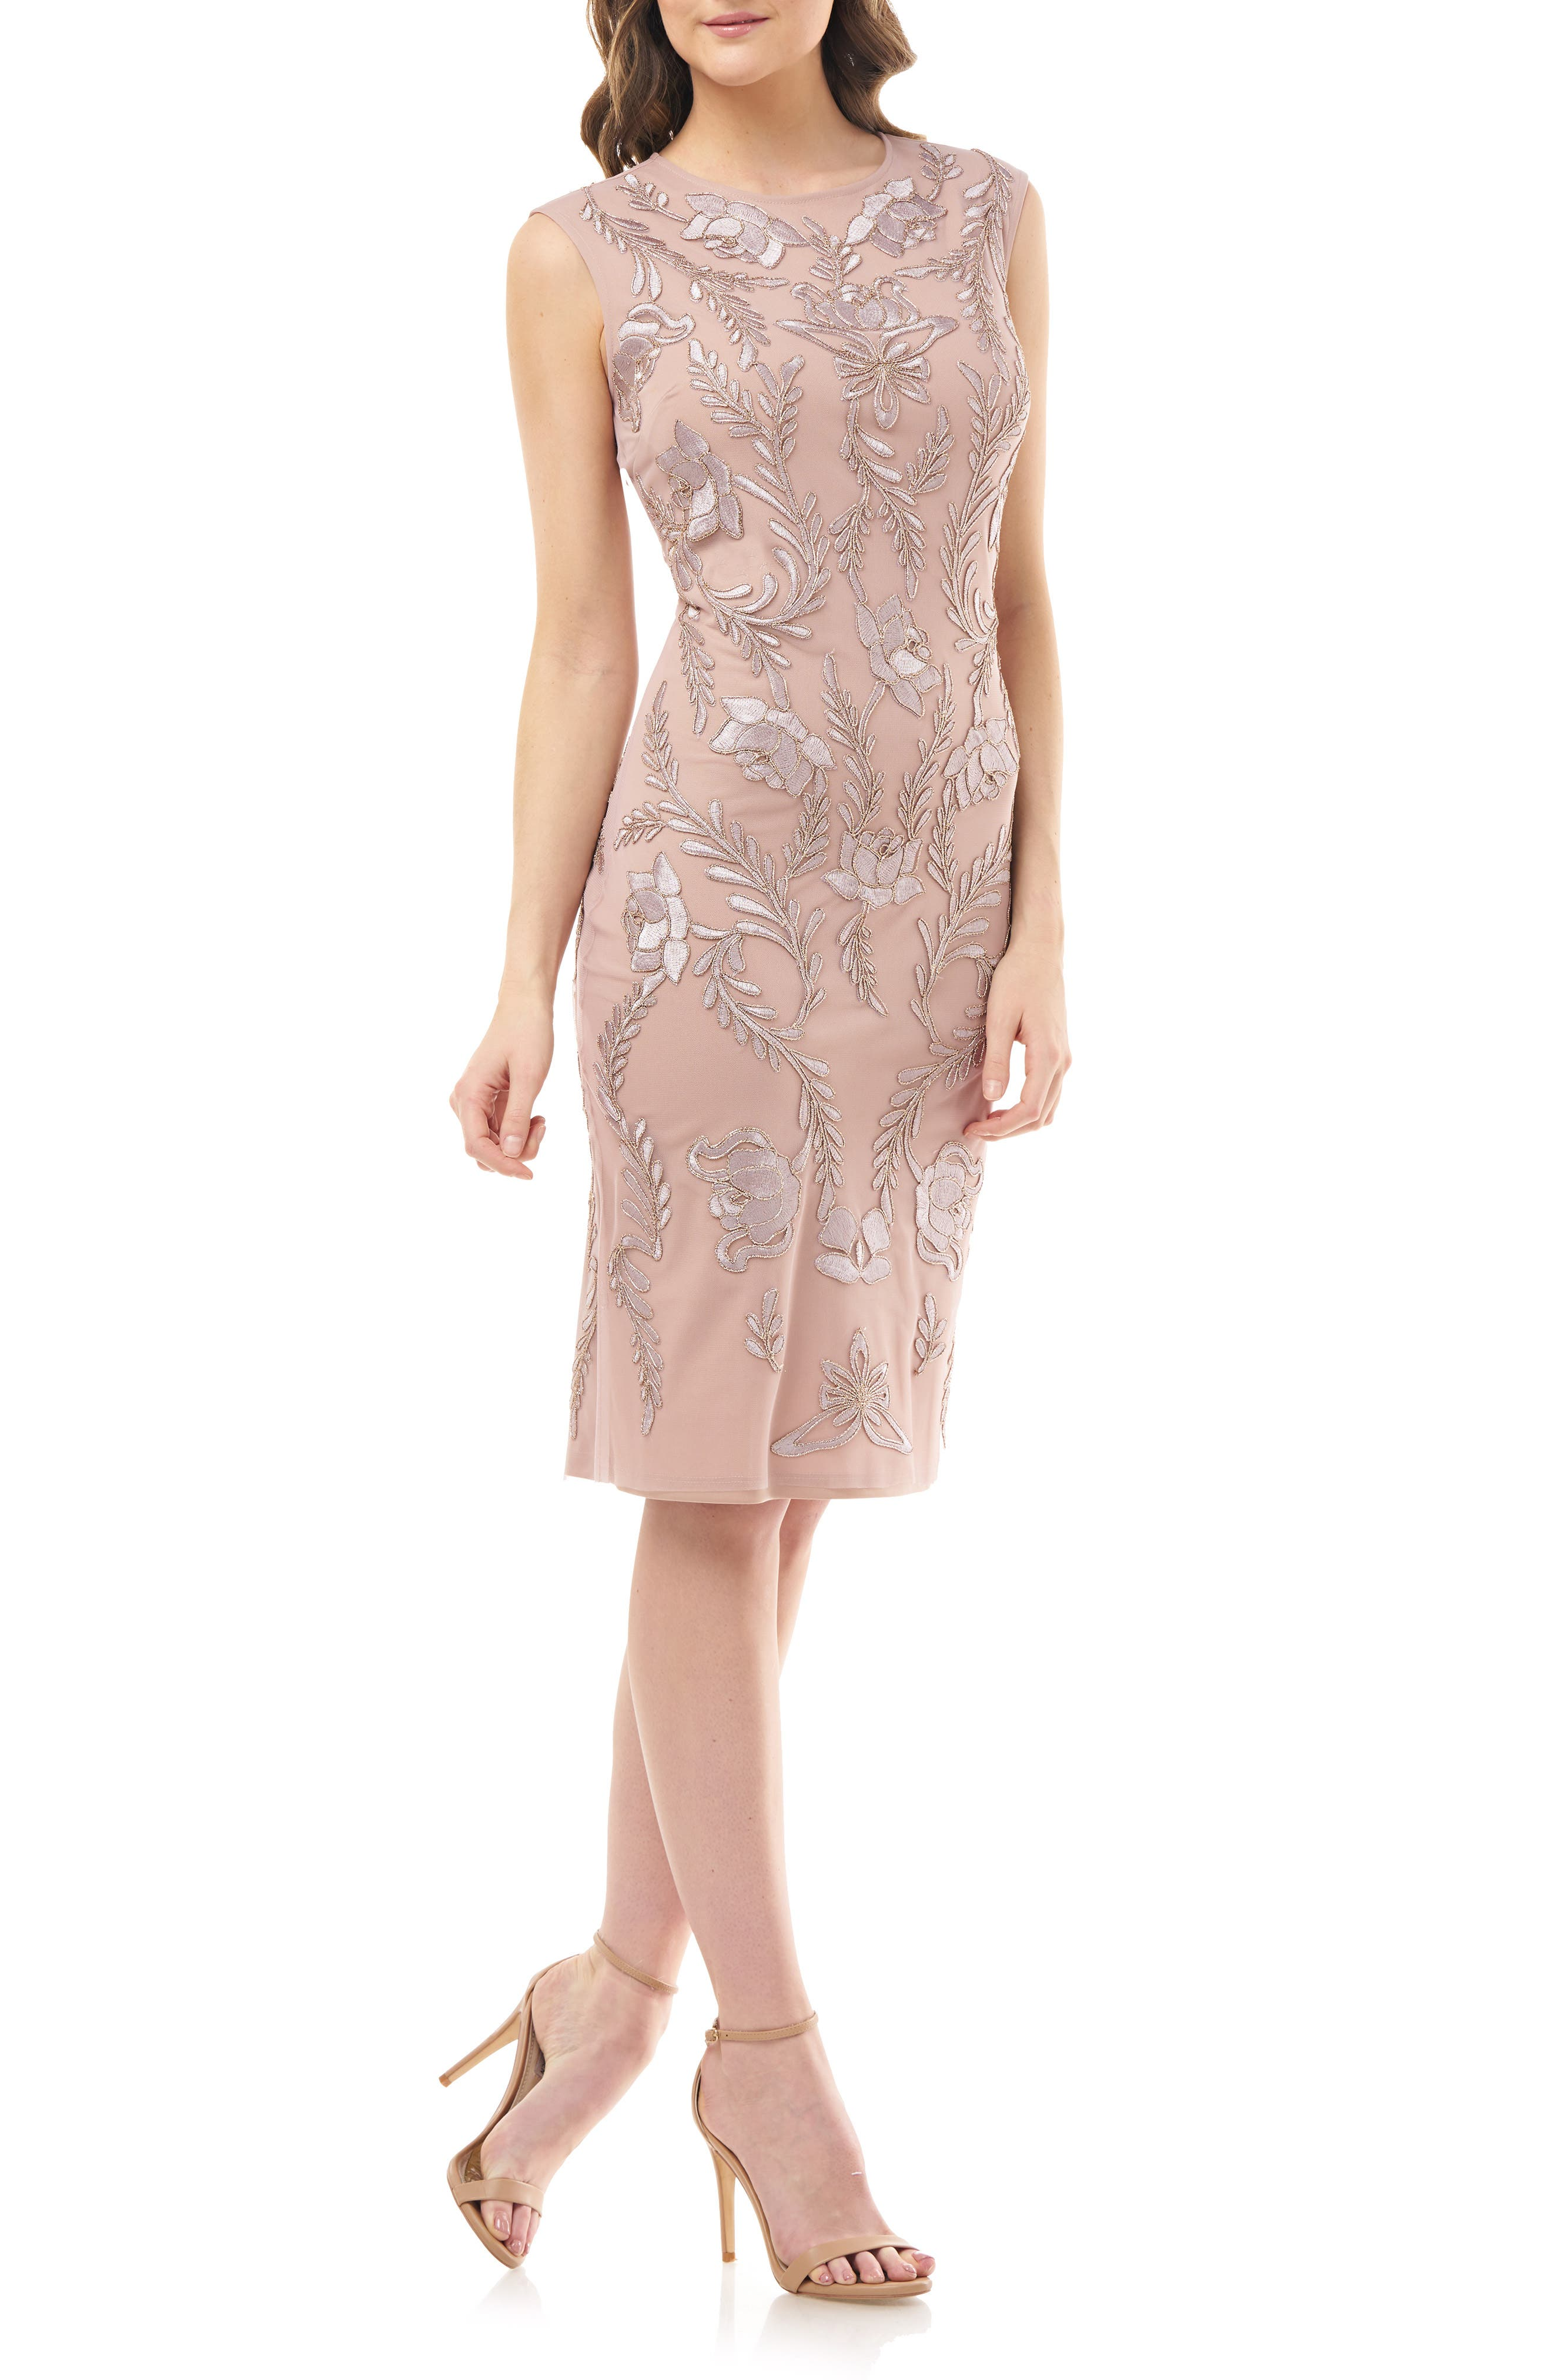 1920s Evening Dresses & Formal Gowns Womens Js Collections Dori Embroidered Cocktail Dress $288.00 AT vintagedancer.com